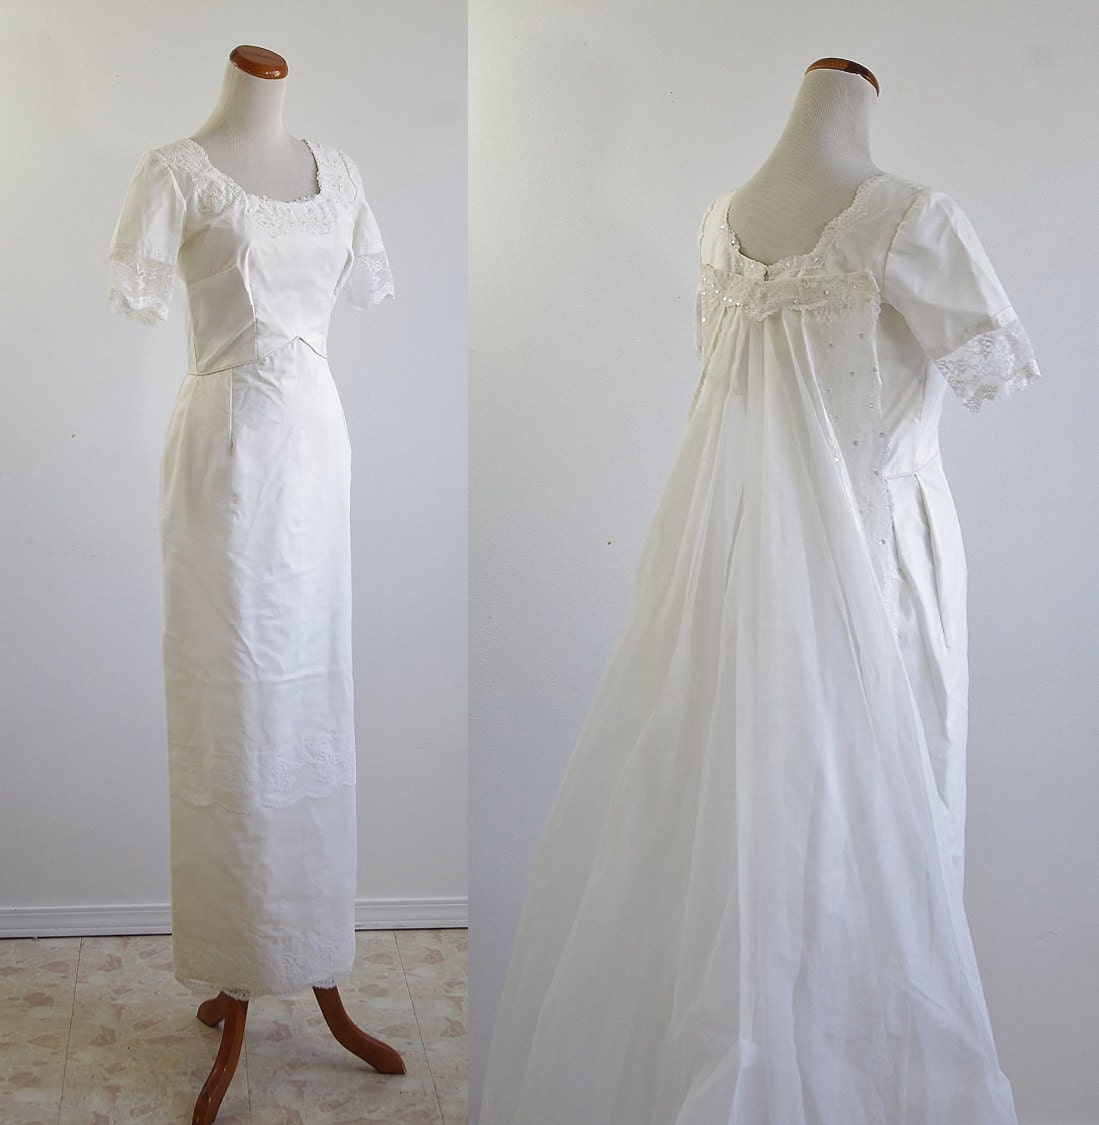 Vintage 60s Wedding Dress White Lace Wedding Dress by